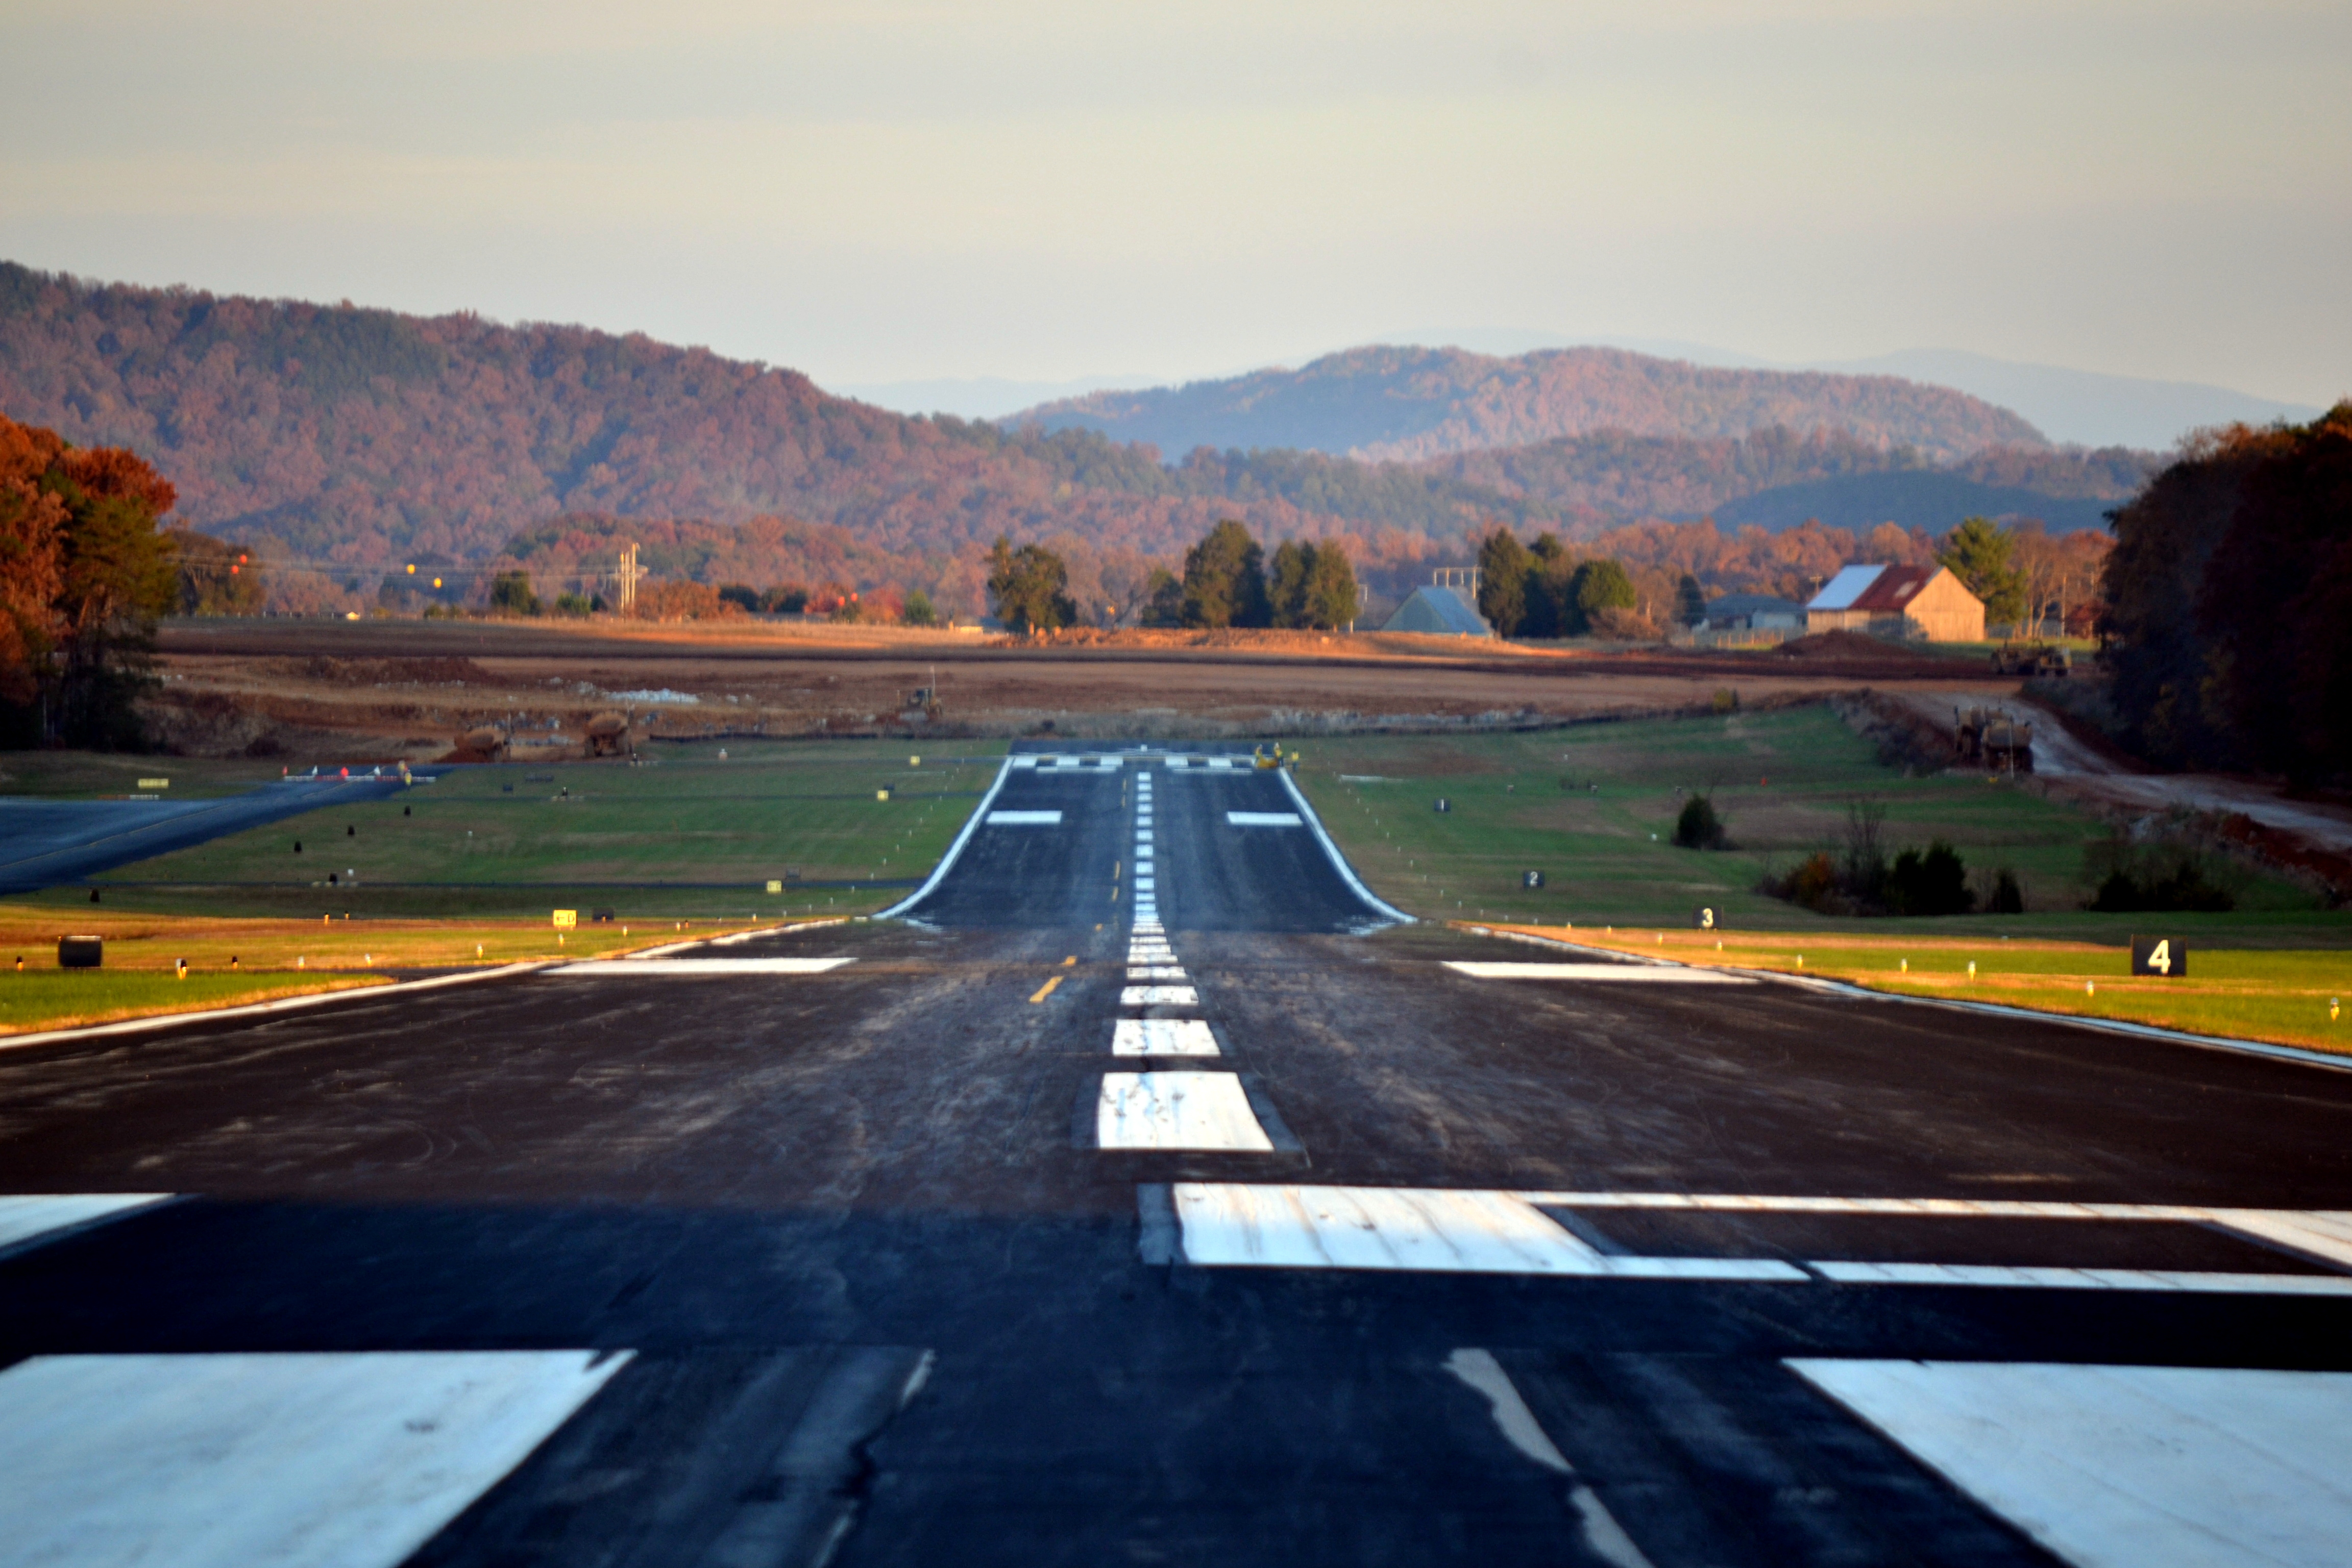 Gatlinburg Pigeon Forge Airport | Your airport in the Smokies